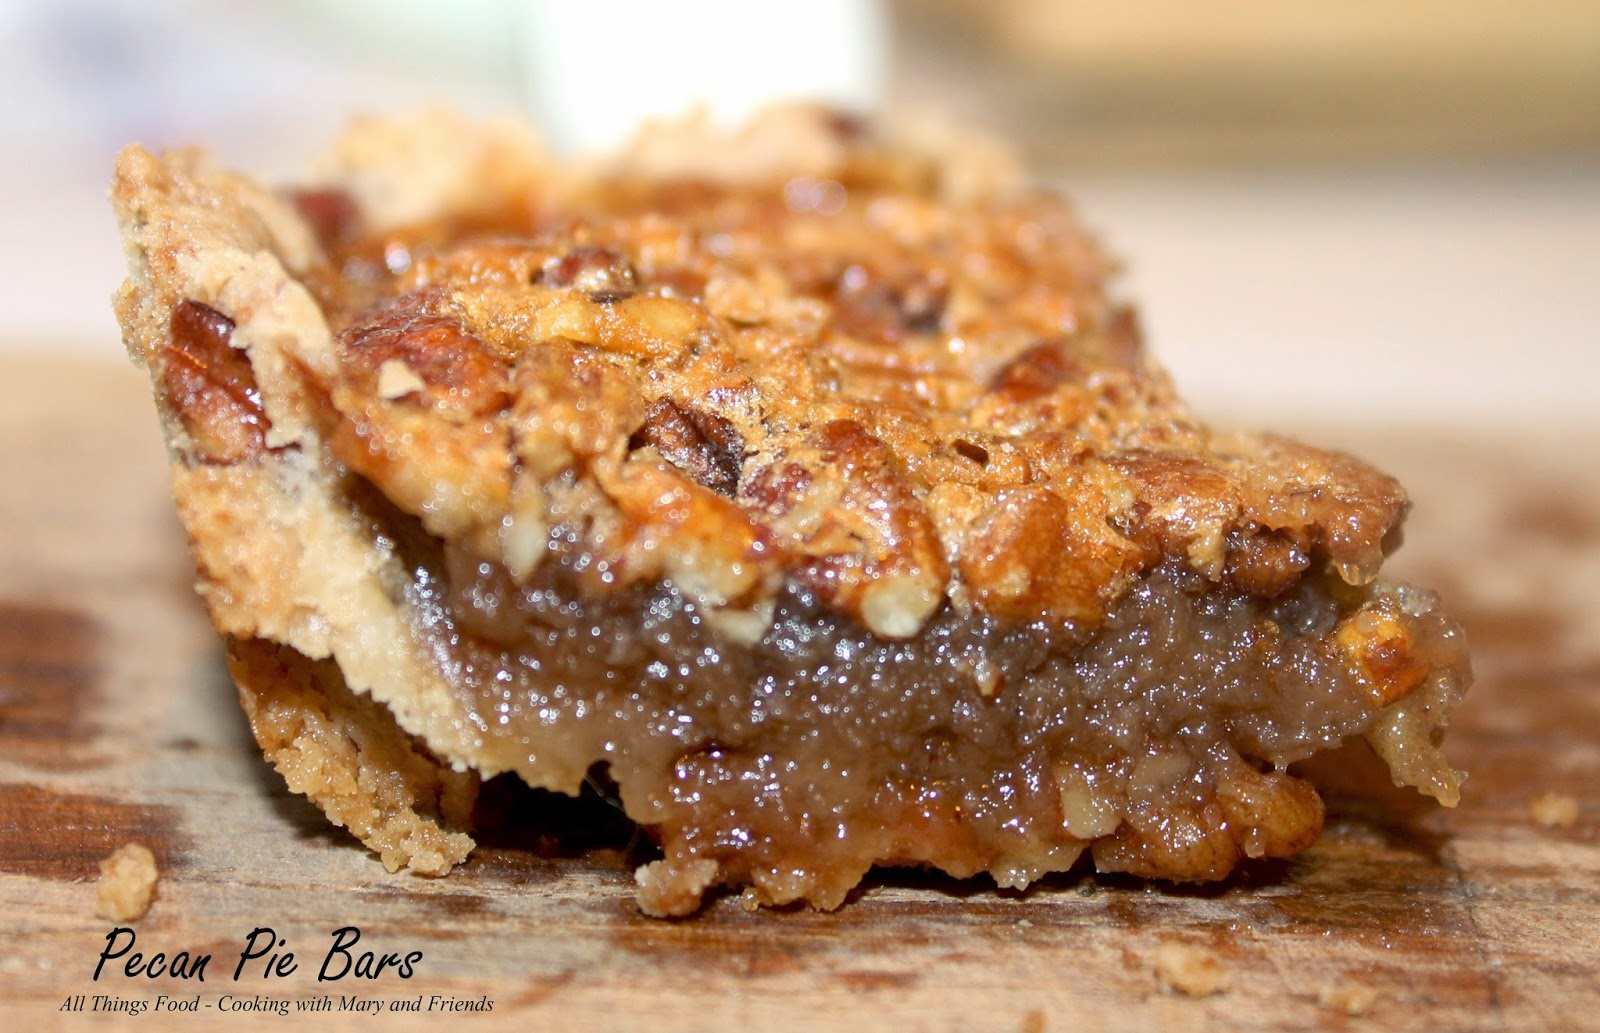 Cooking With Mary and Friends: Pecan Pie Bars